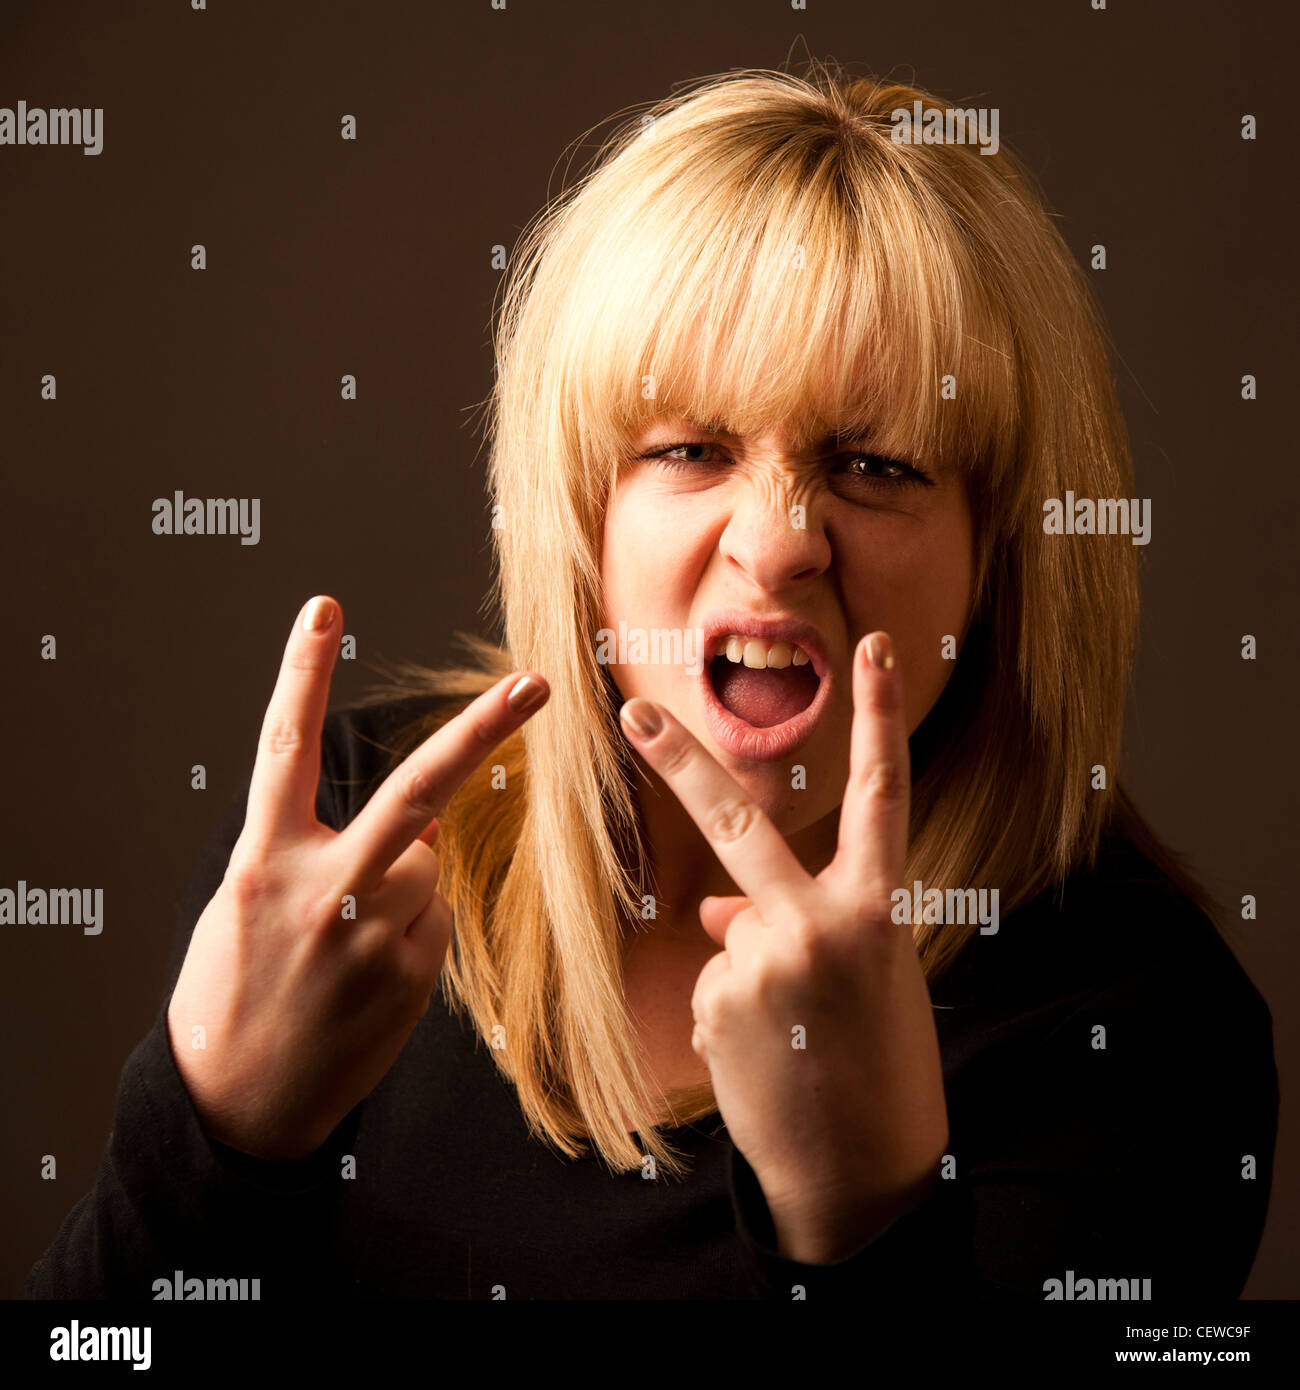 a blonde haired girl woman making an offensive gesture with the fingers of her hand - flicking the v's - Stock Image